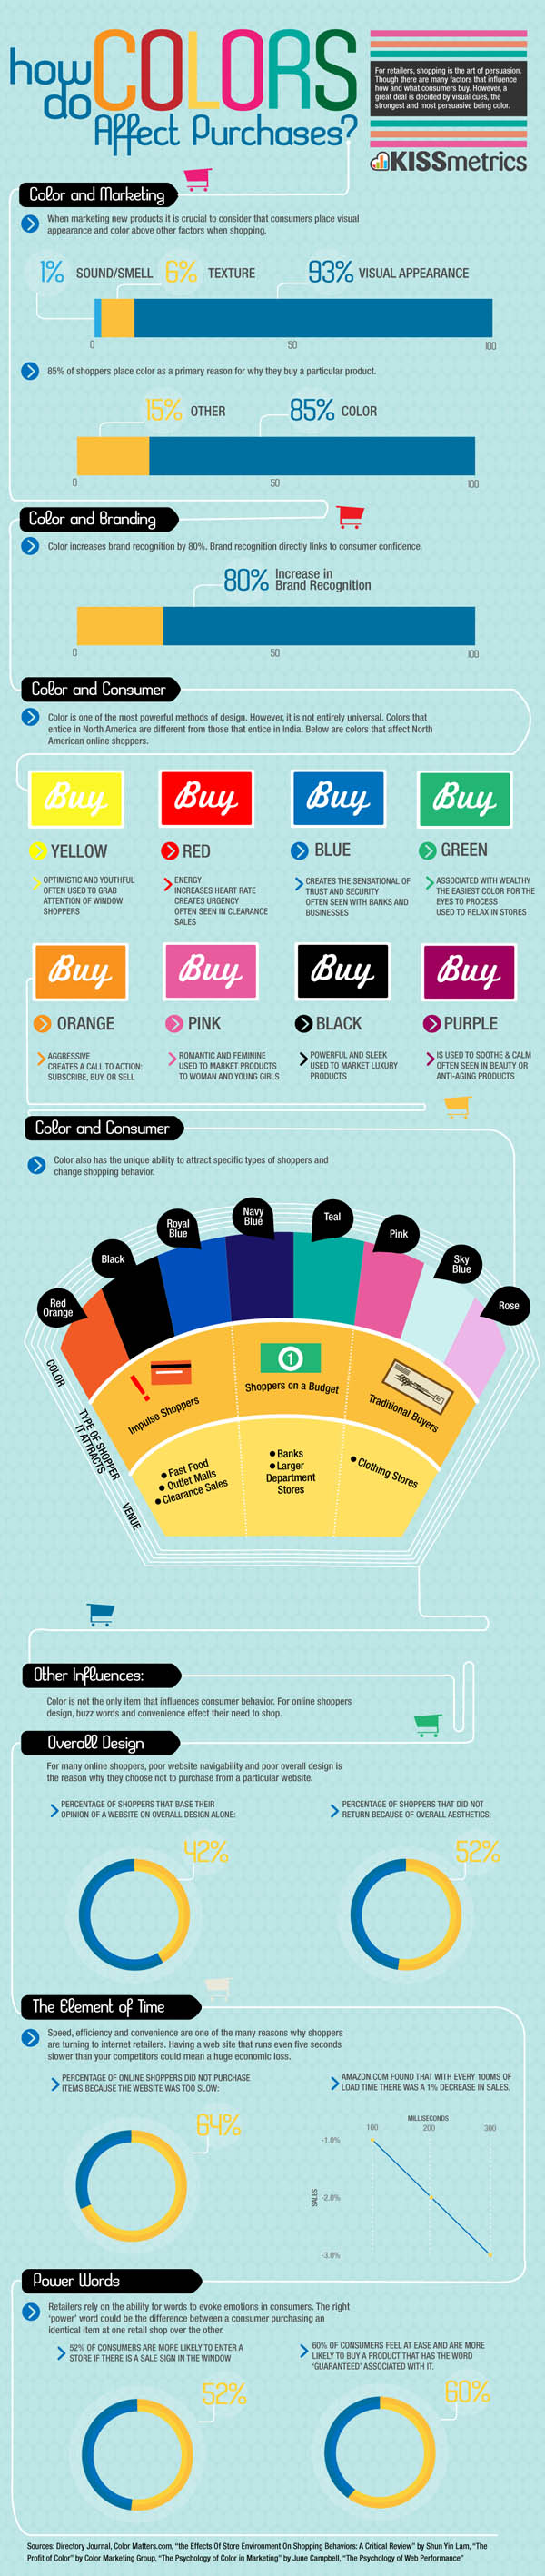 http://smashfreakz.com/wp-content/uploads/2012/07/how-do-colors-affect-purchases.jpg